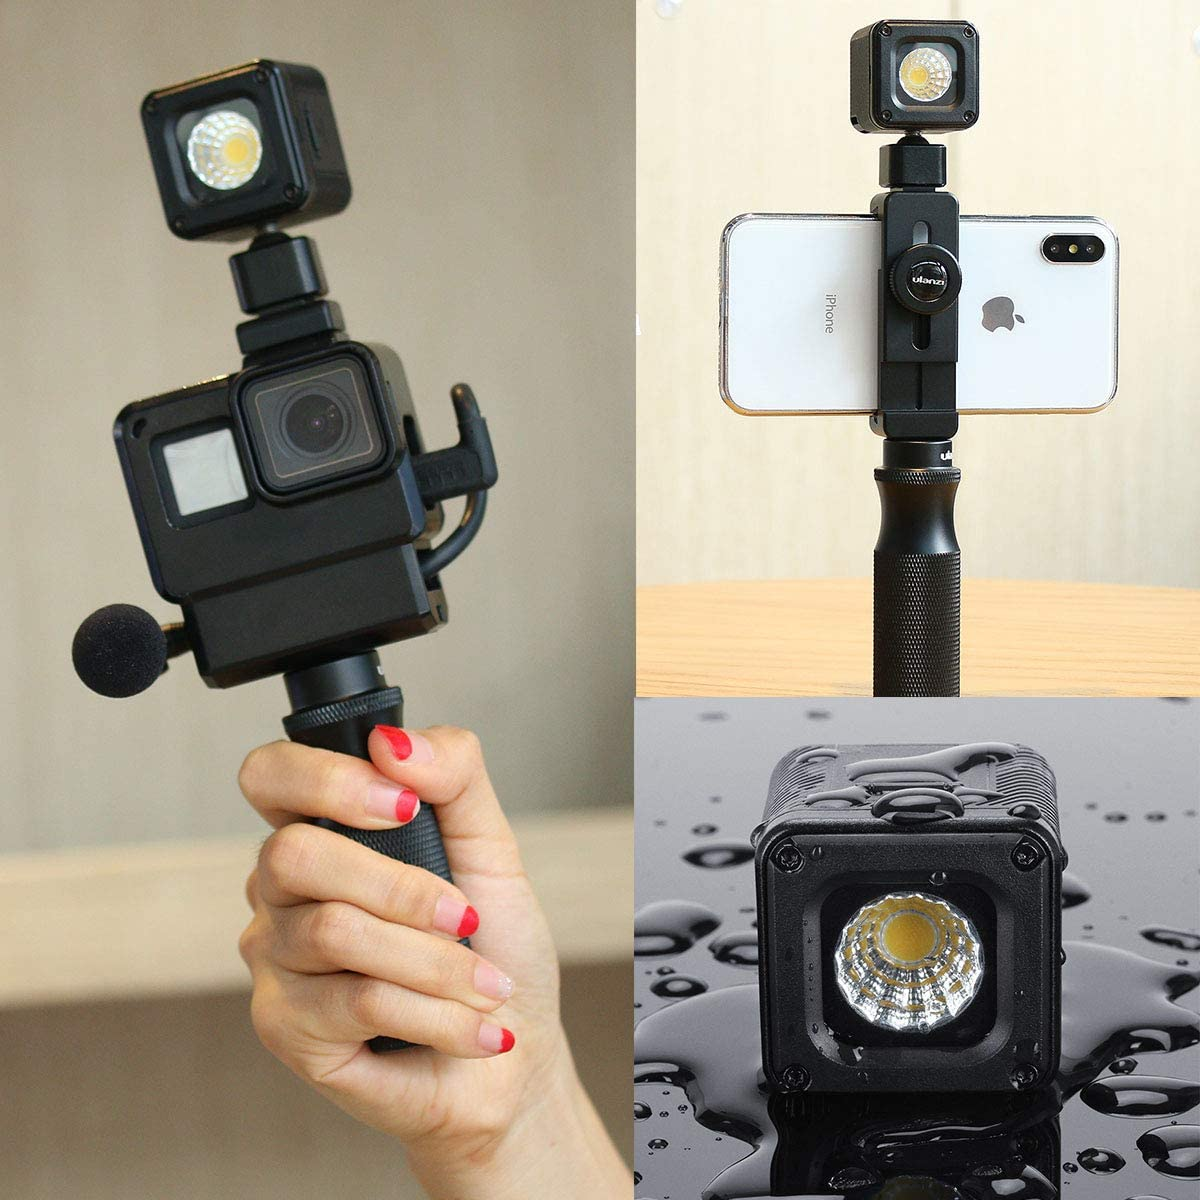 Super Bright 10m Waterproof LED Video Light ULANZI L1 Pro Vlog Dimmable Fill Light on Camera with 20pcs Color Filters for Yuneec Drones DJI Osmo Pocket Osmo Action Gopro 7//6//5 Sony DSLR Camera